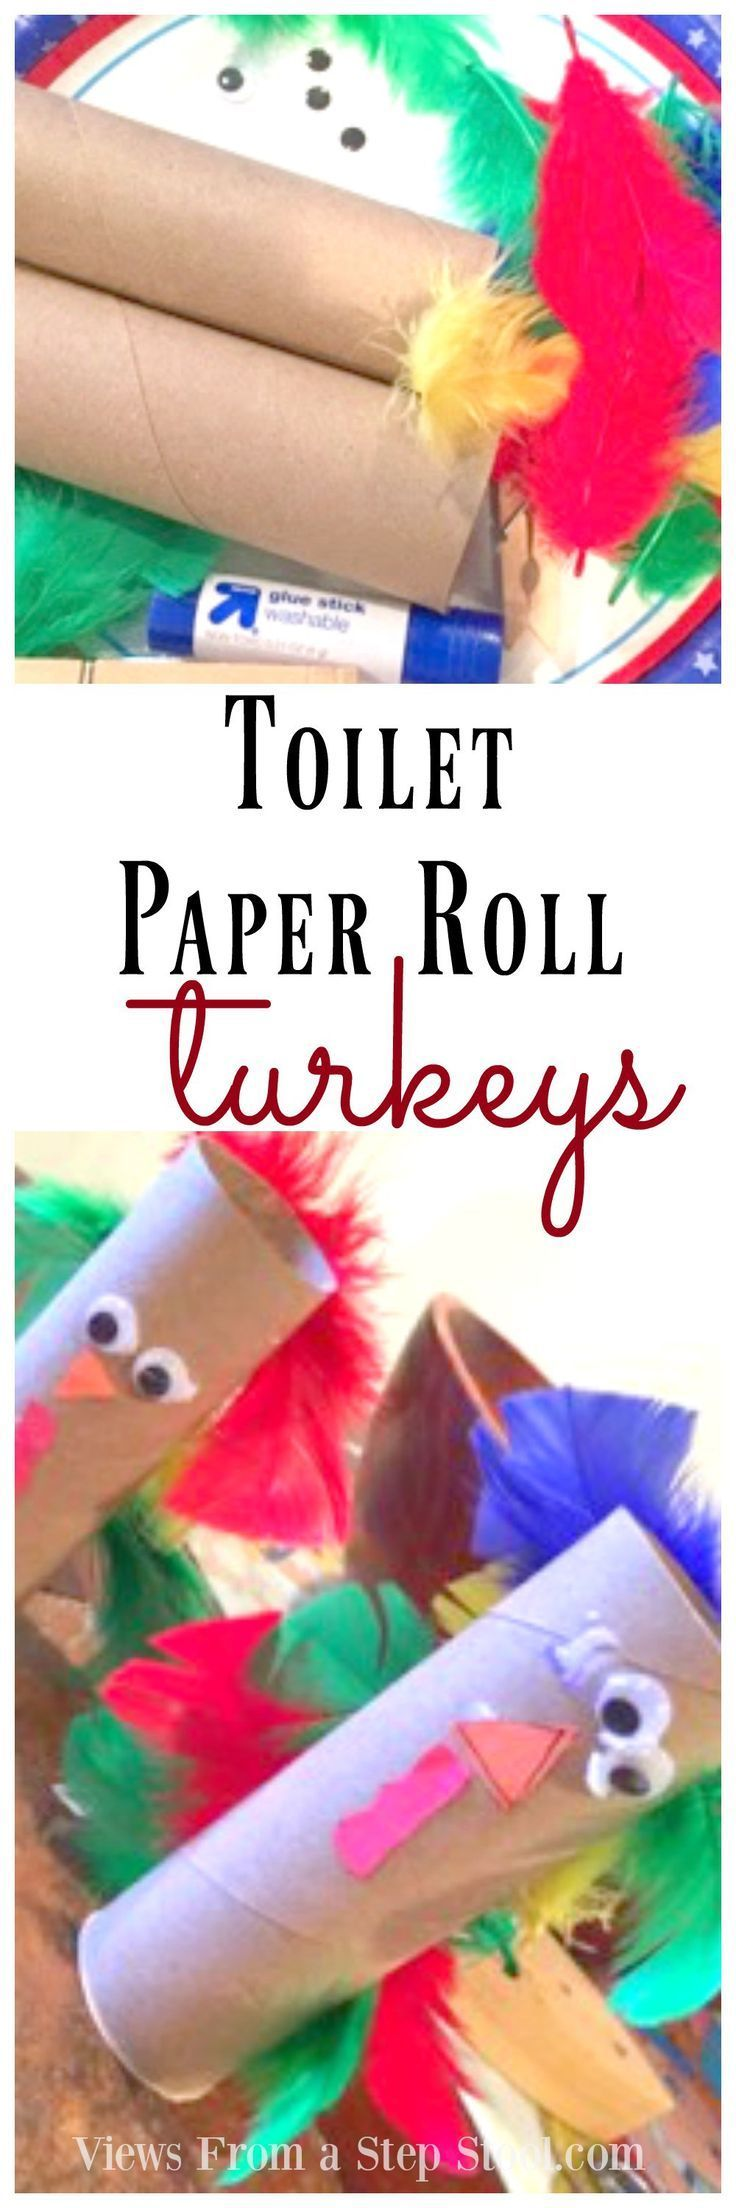 Toilet paper roll turkey thanksgiving craft for kids Toilet paper roll centerpieces